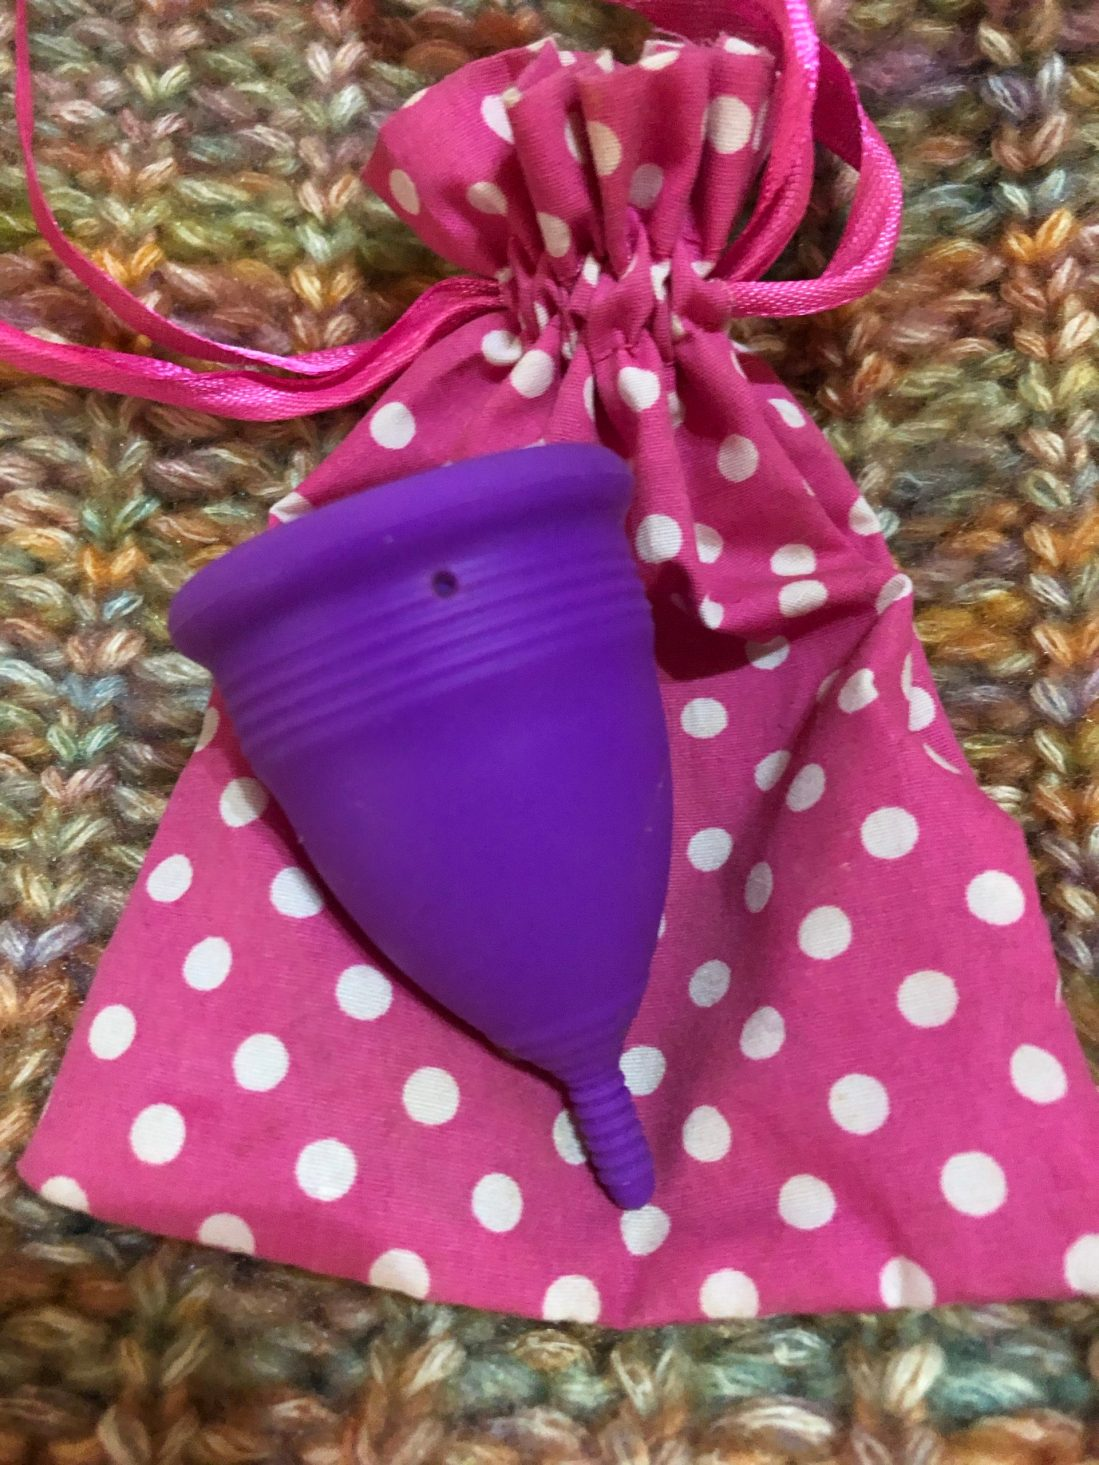 Blossom Menstrual cup and bag